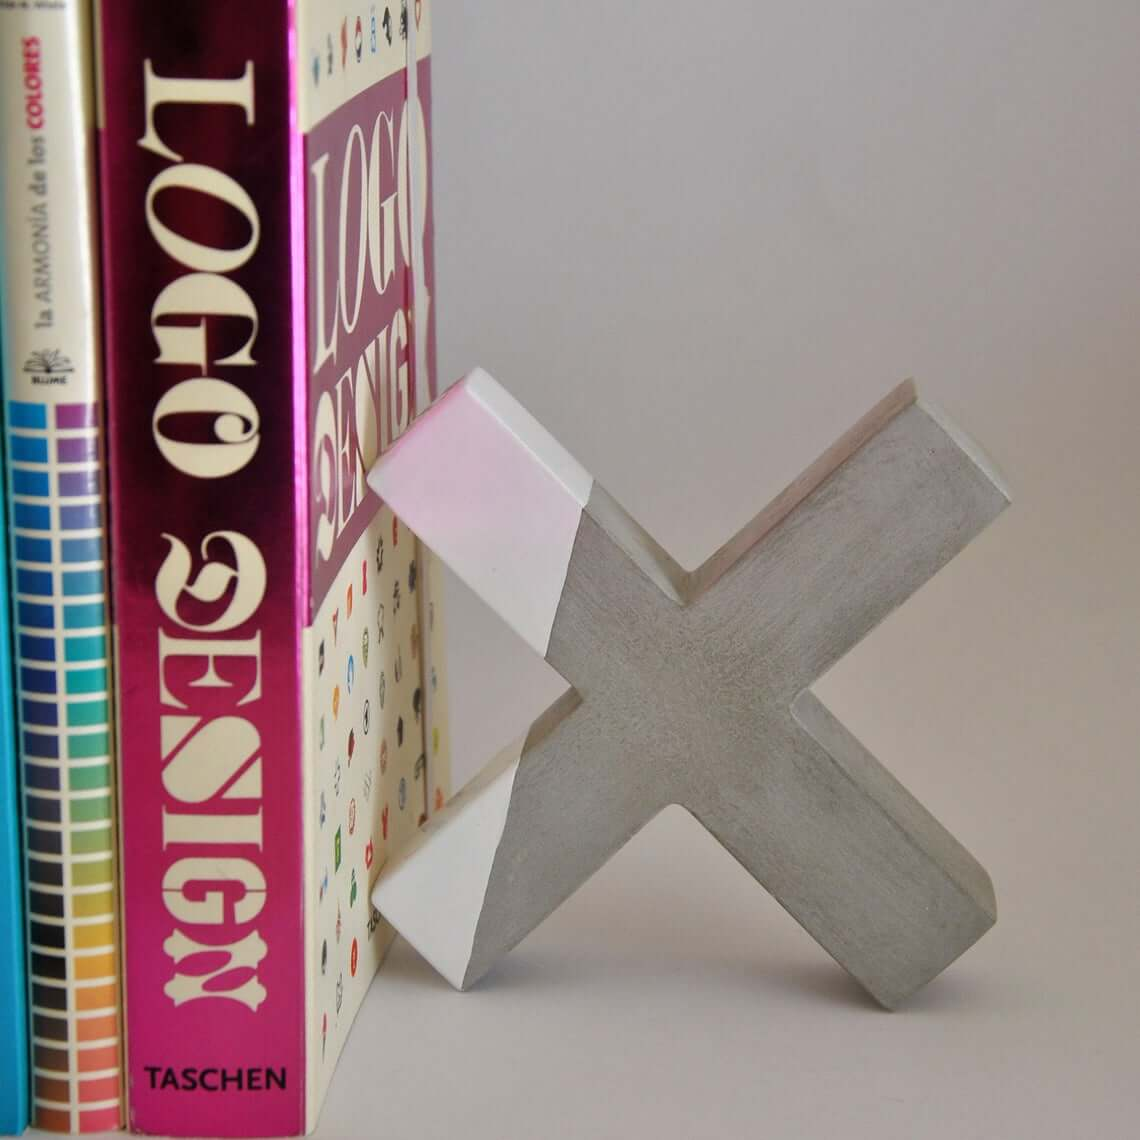 Concrete X-Shaped Bookends or Paperweight